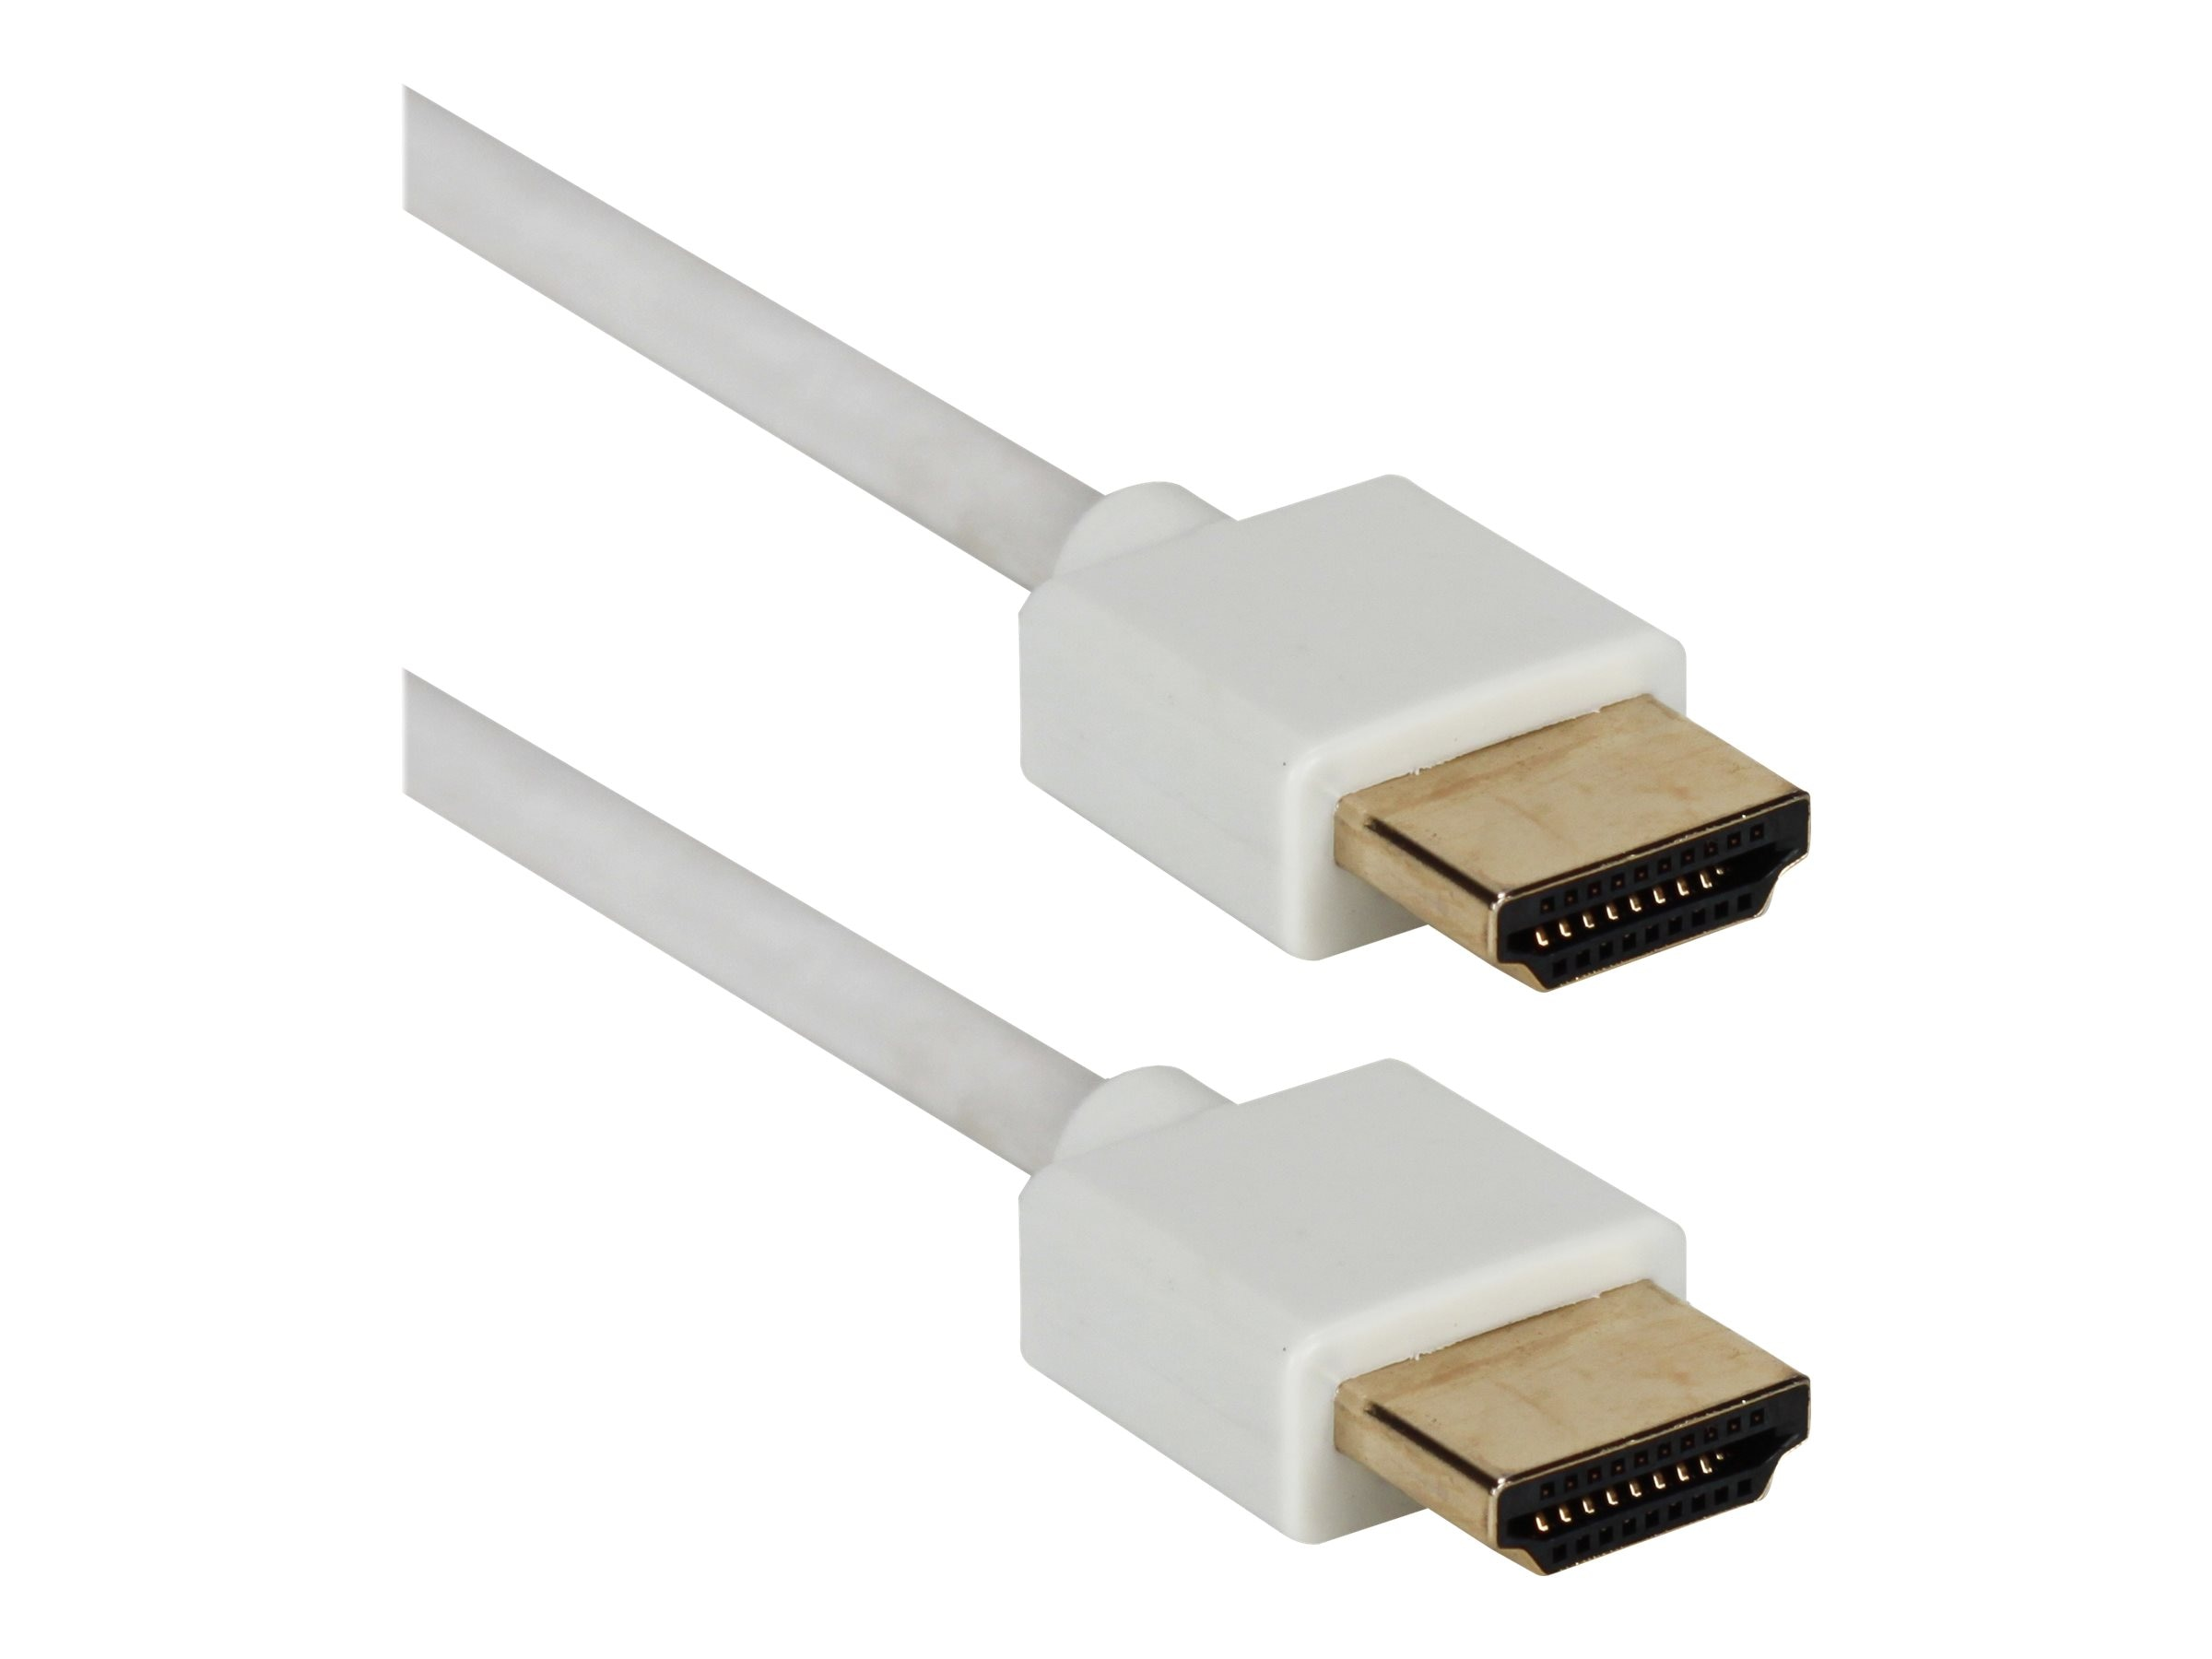 QVS High Speed HDMI Ultra HD 4K HDMI M M Cable with Ethernet, White, 6ft